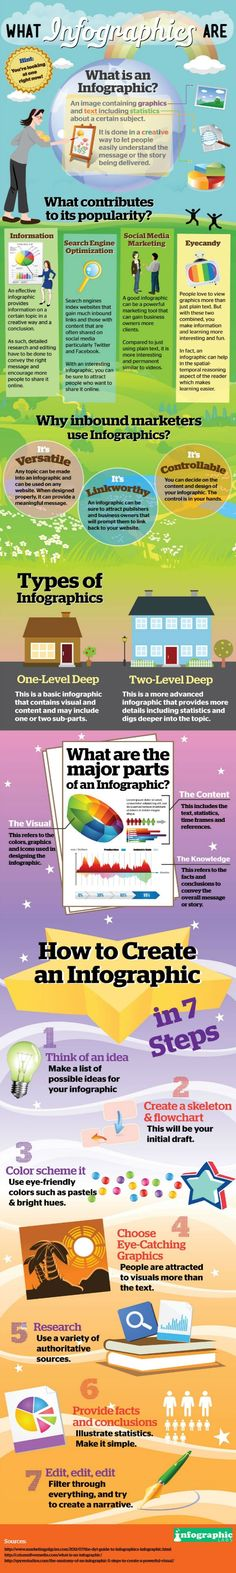 An #infographic about infographics.